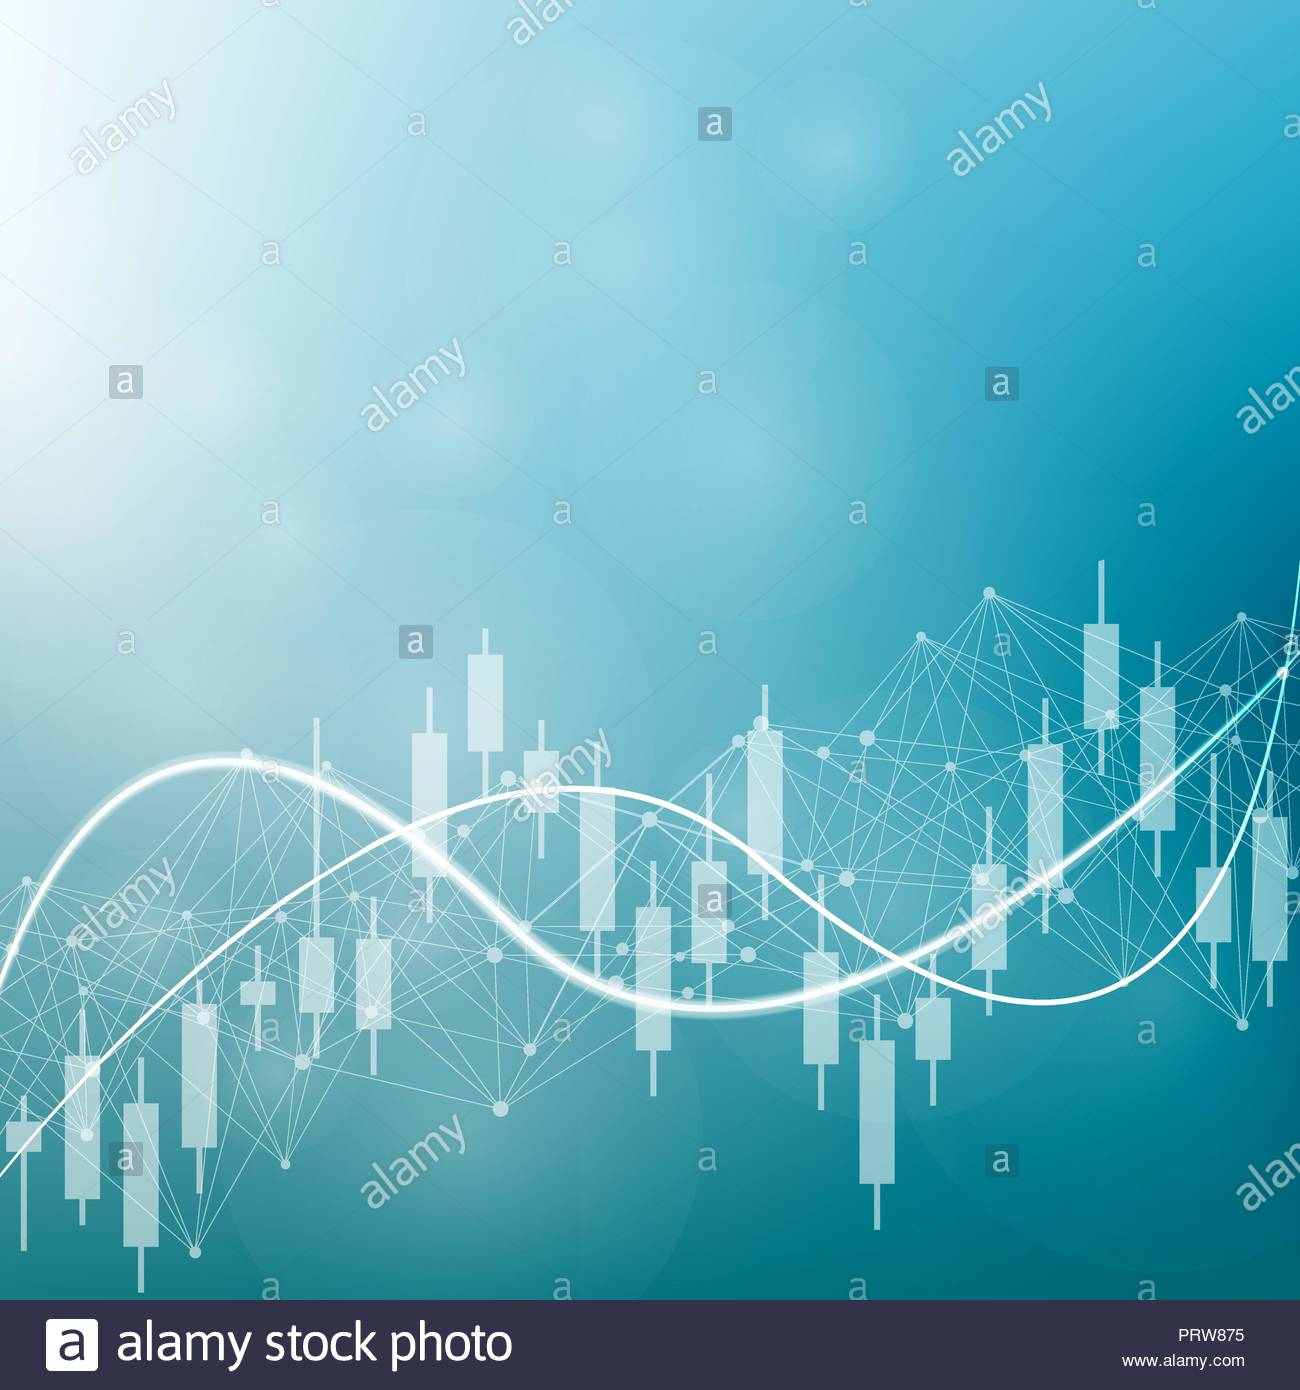 Stock market or forex trading graph Chart in financial market 1300x1390